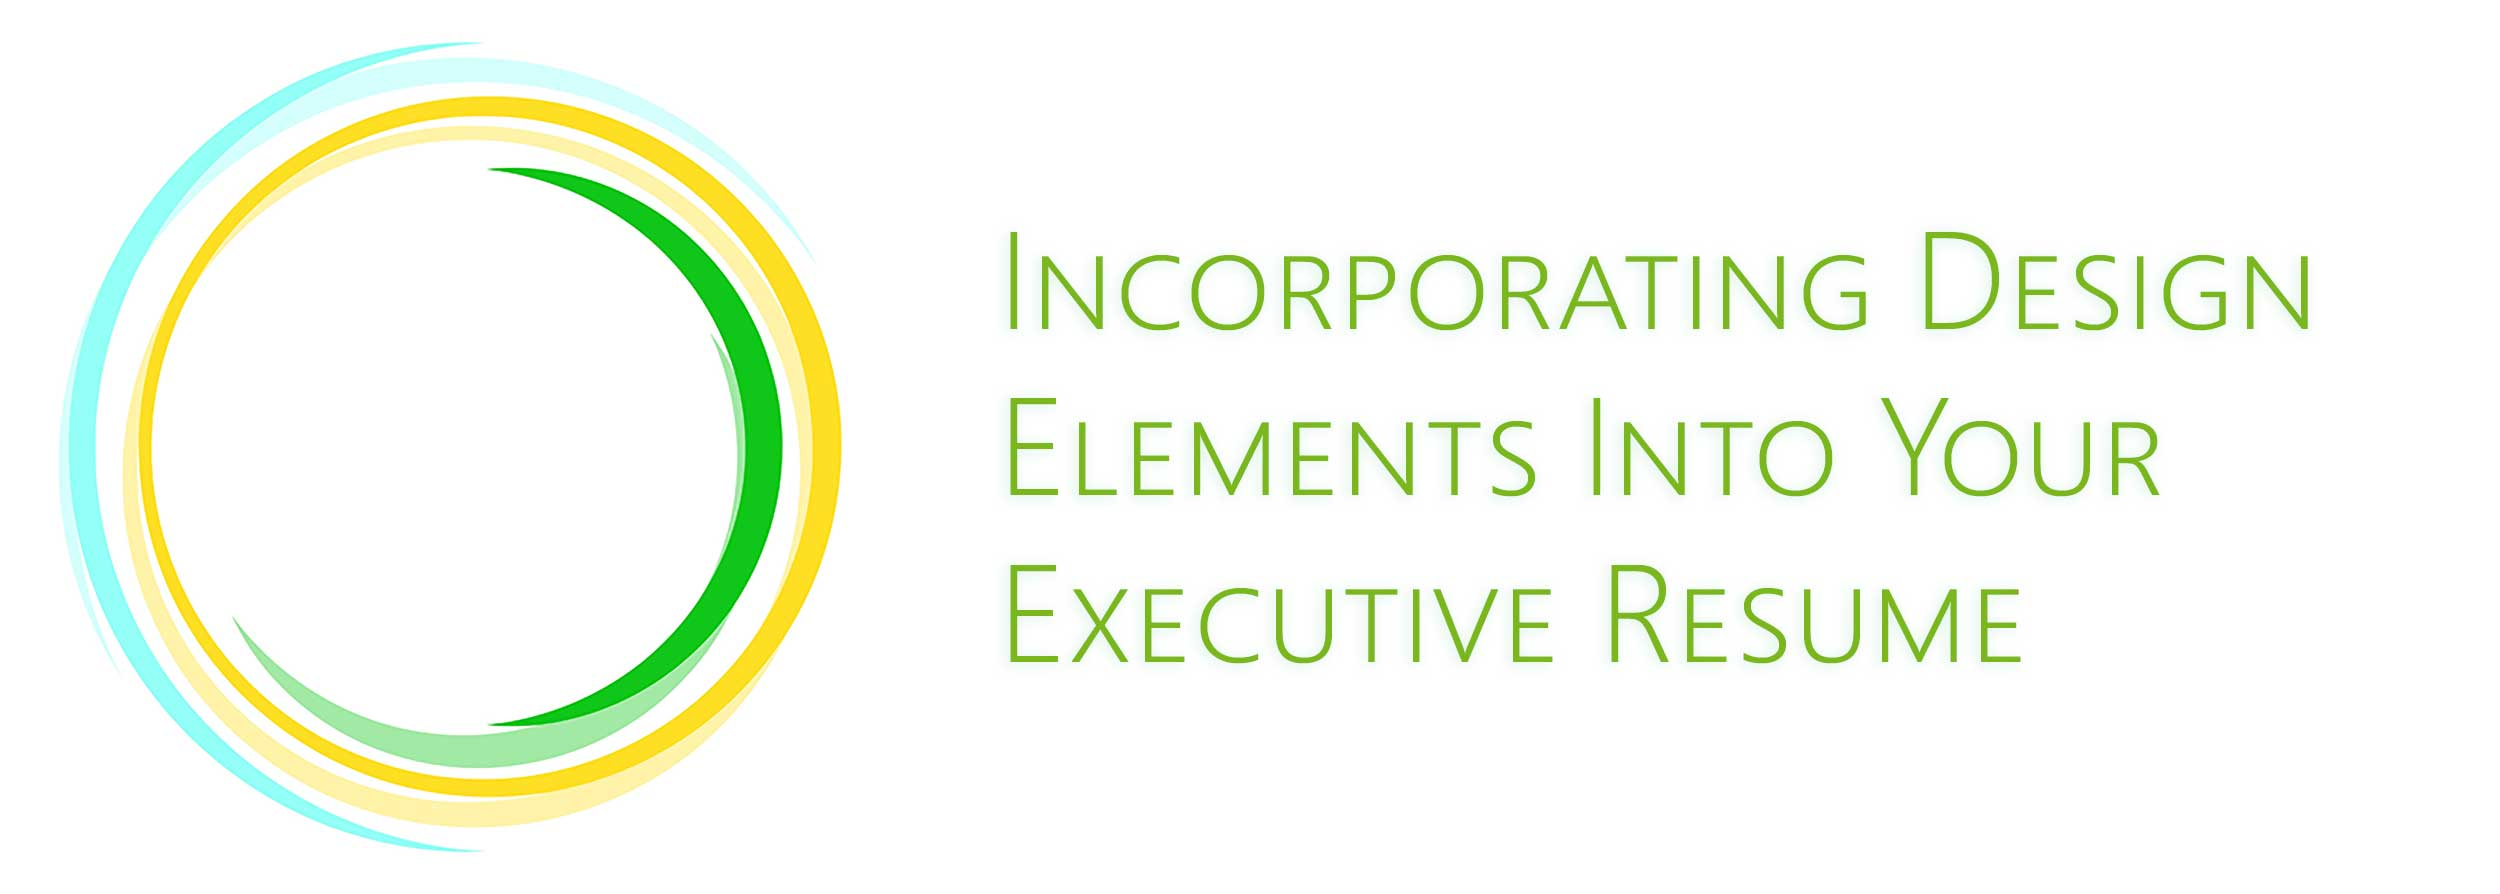 Incorporating Design Elements into Your Executive Resume - Total ...